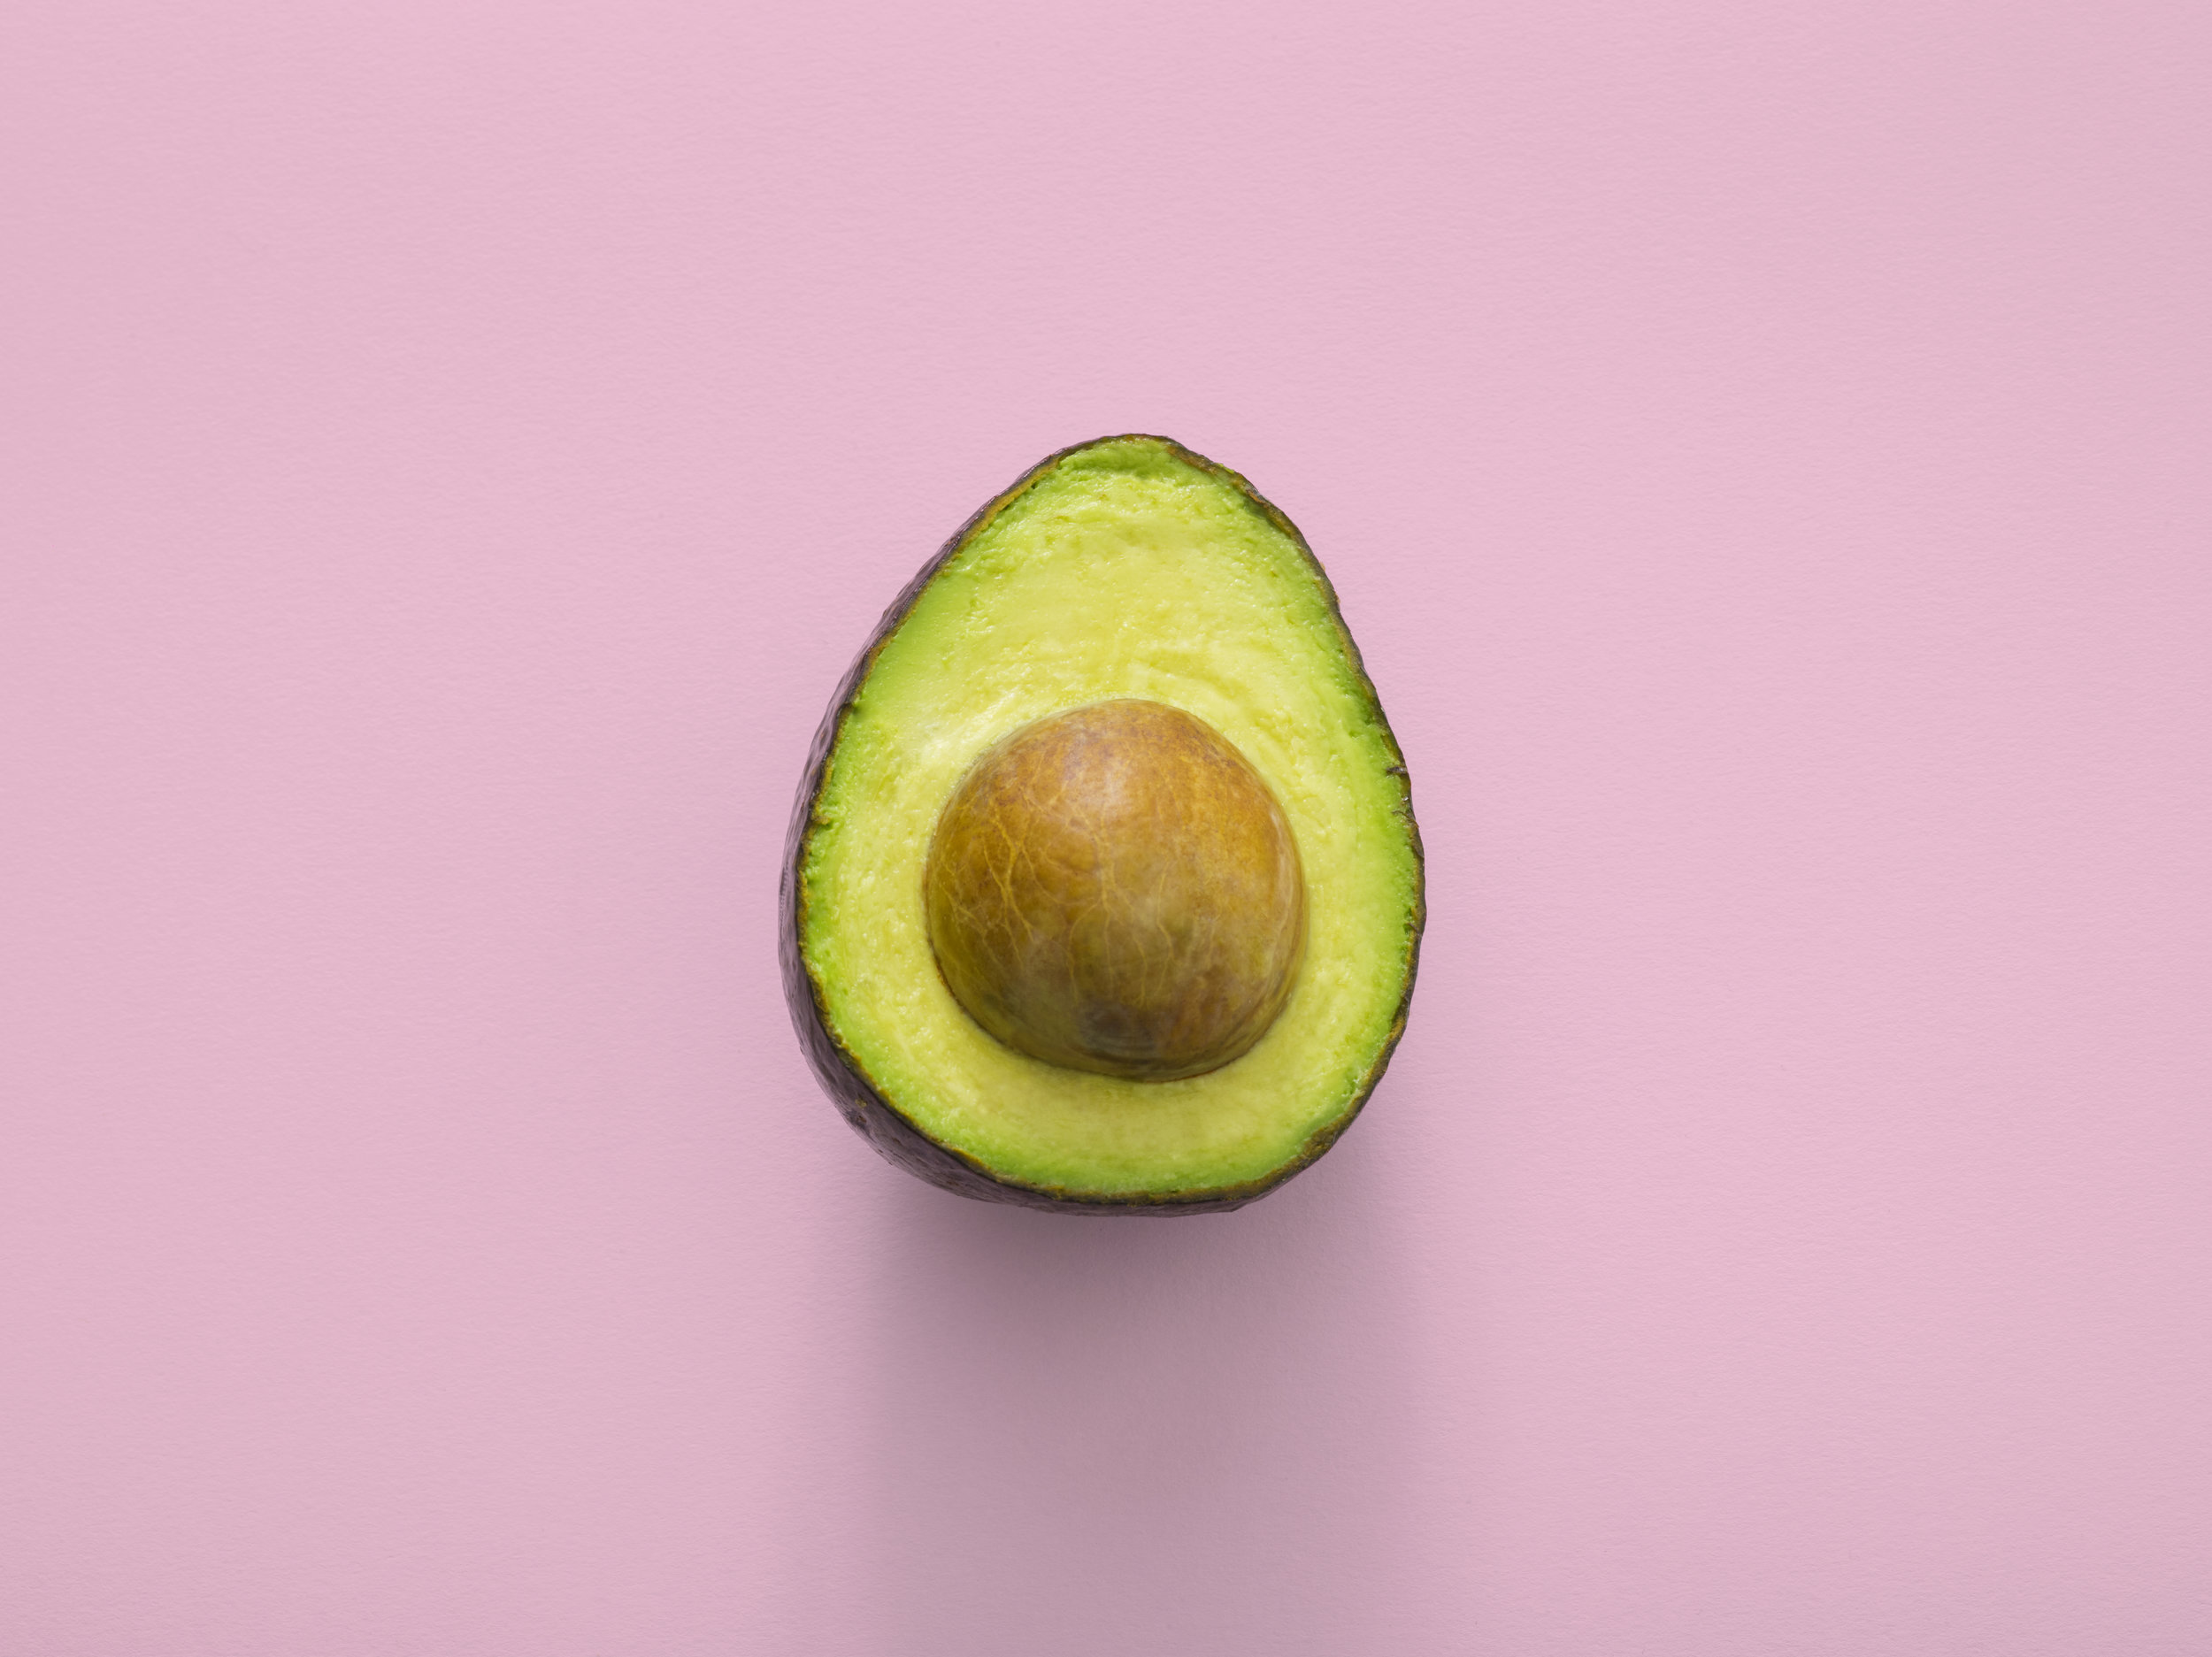 We will discuss what makes avocado oil one of the healthiest ingredient choices you can make! If you'd like to see the full ingredient list for Chaps Lip Balm,  Click Here !